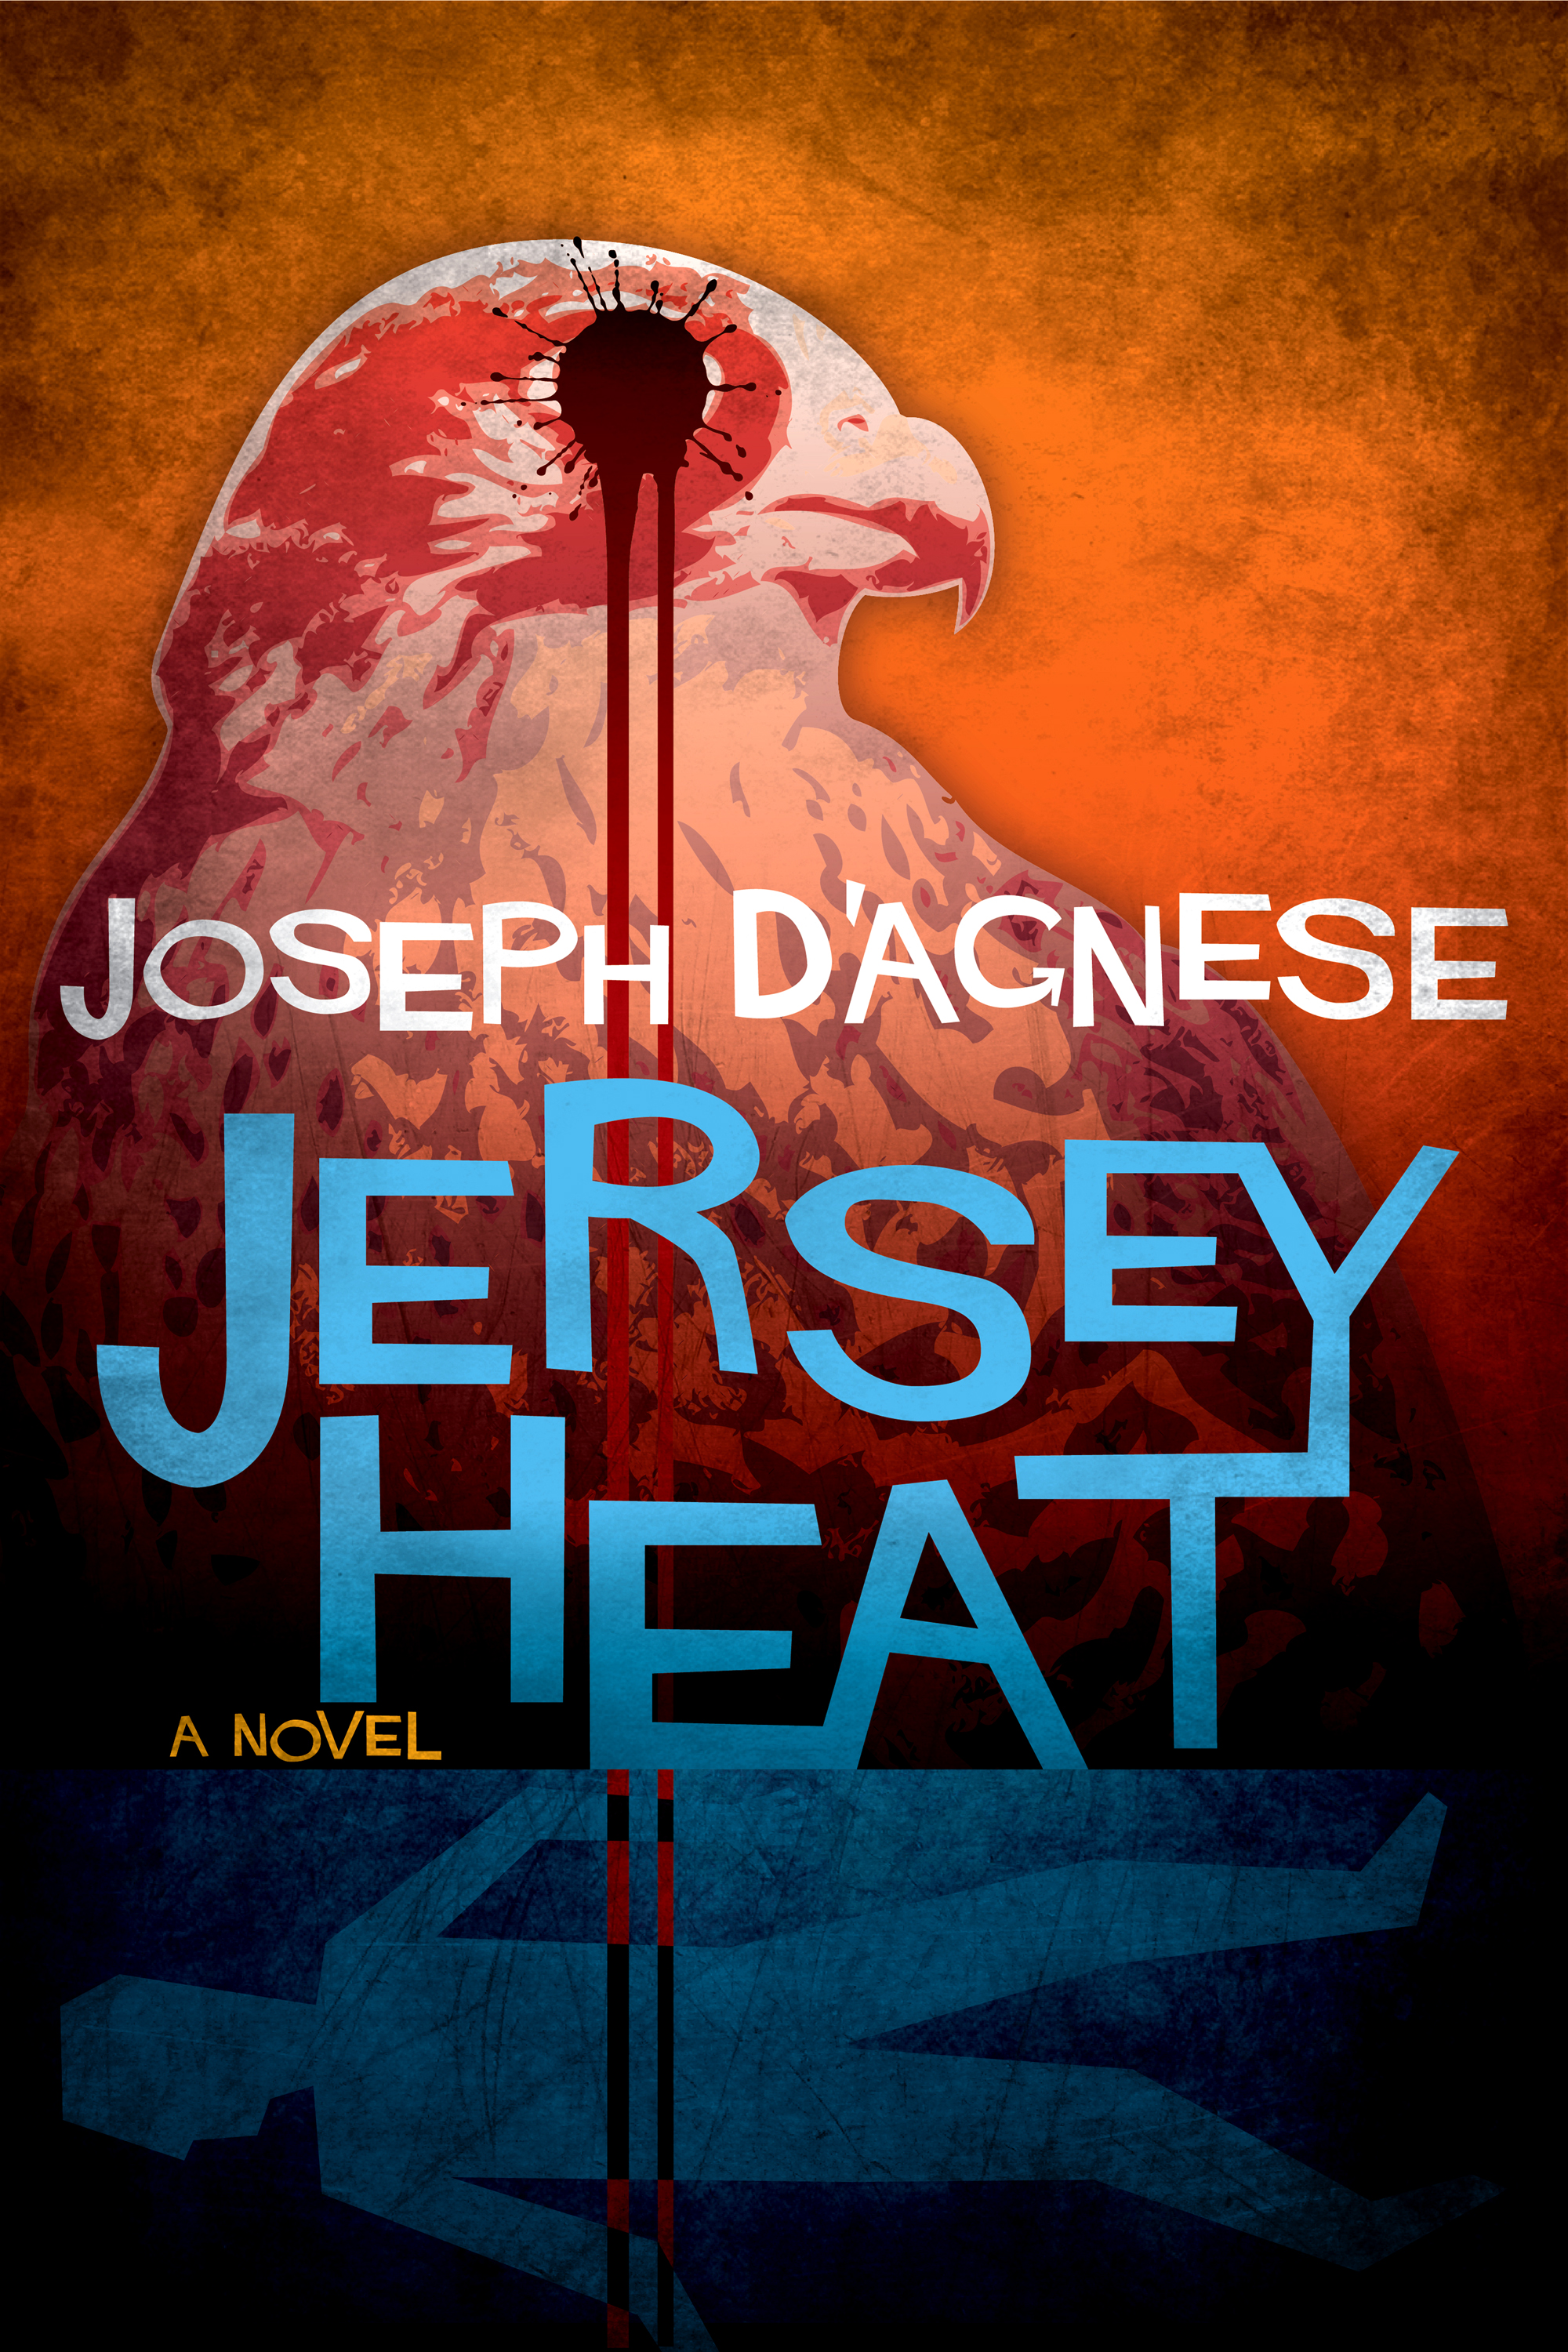 Jersey Heat, a novel by Joseph D'Agnese